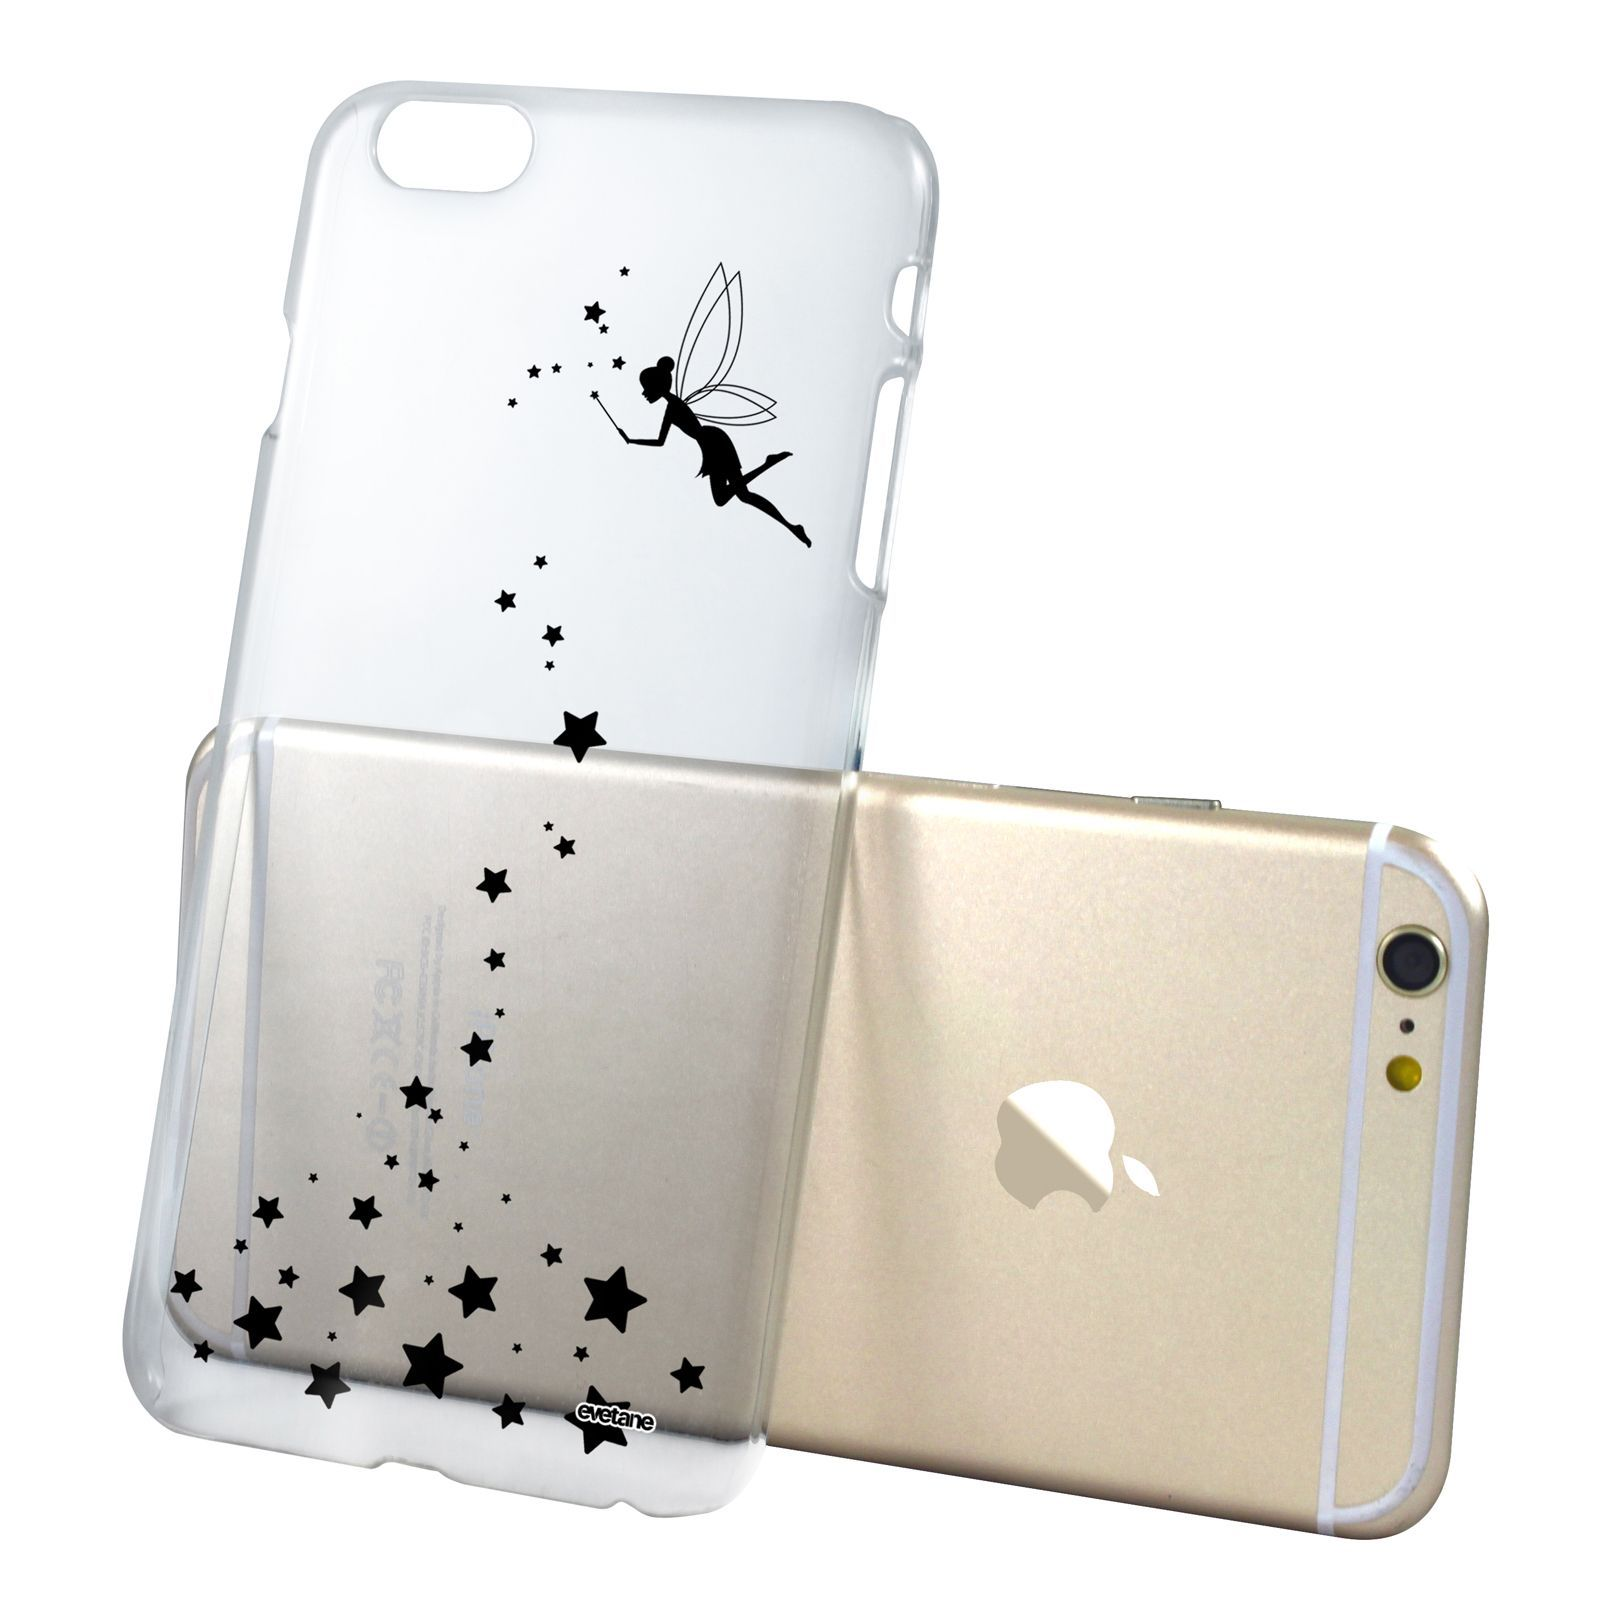 evetane carcasa iphone 6